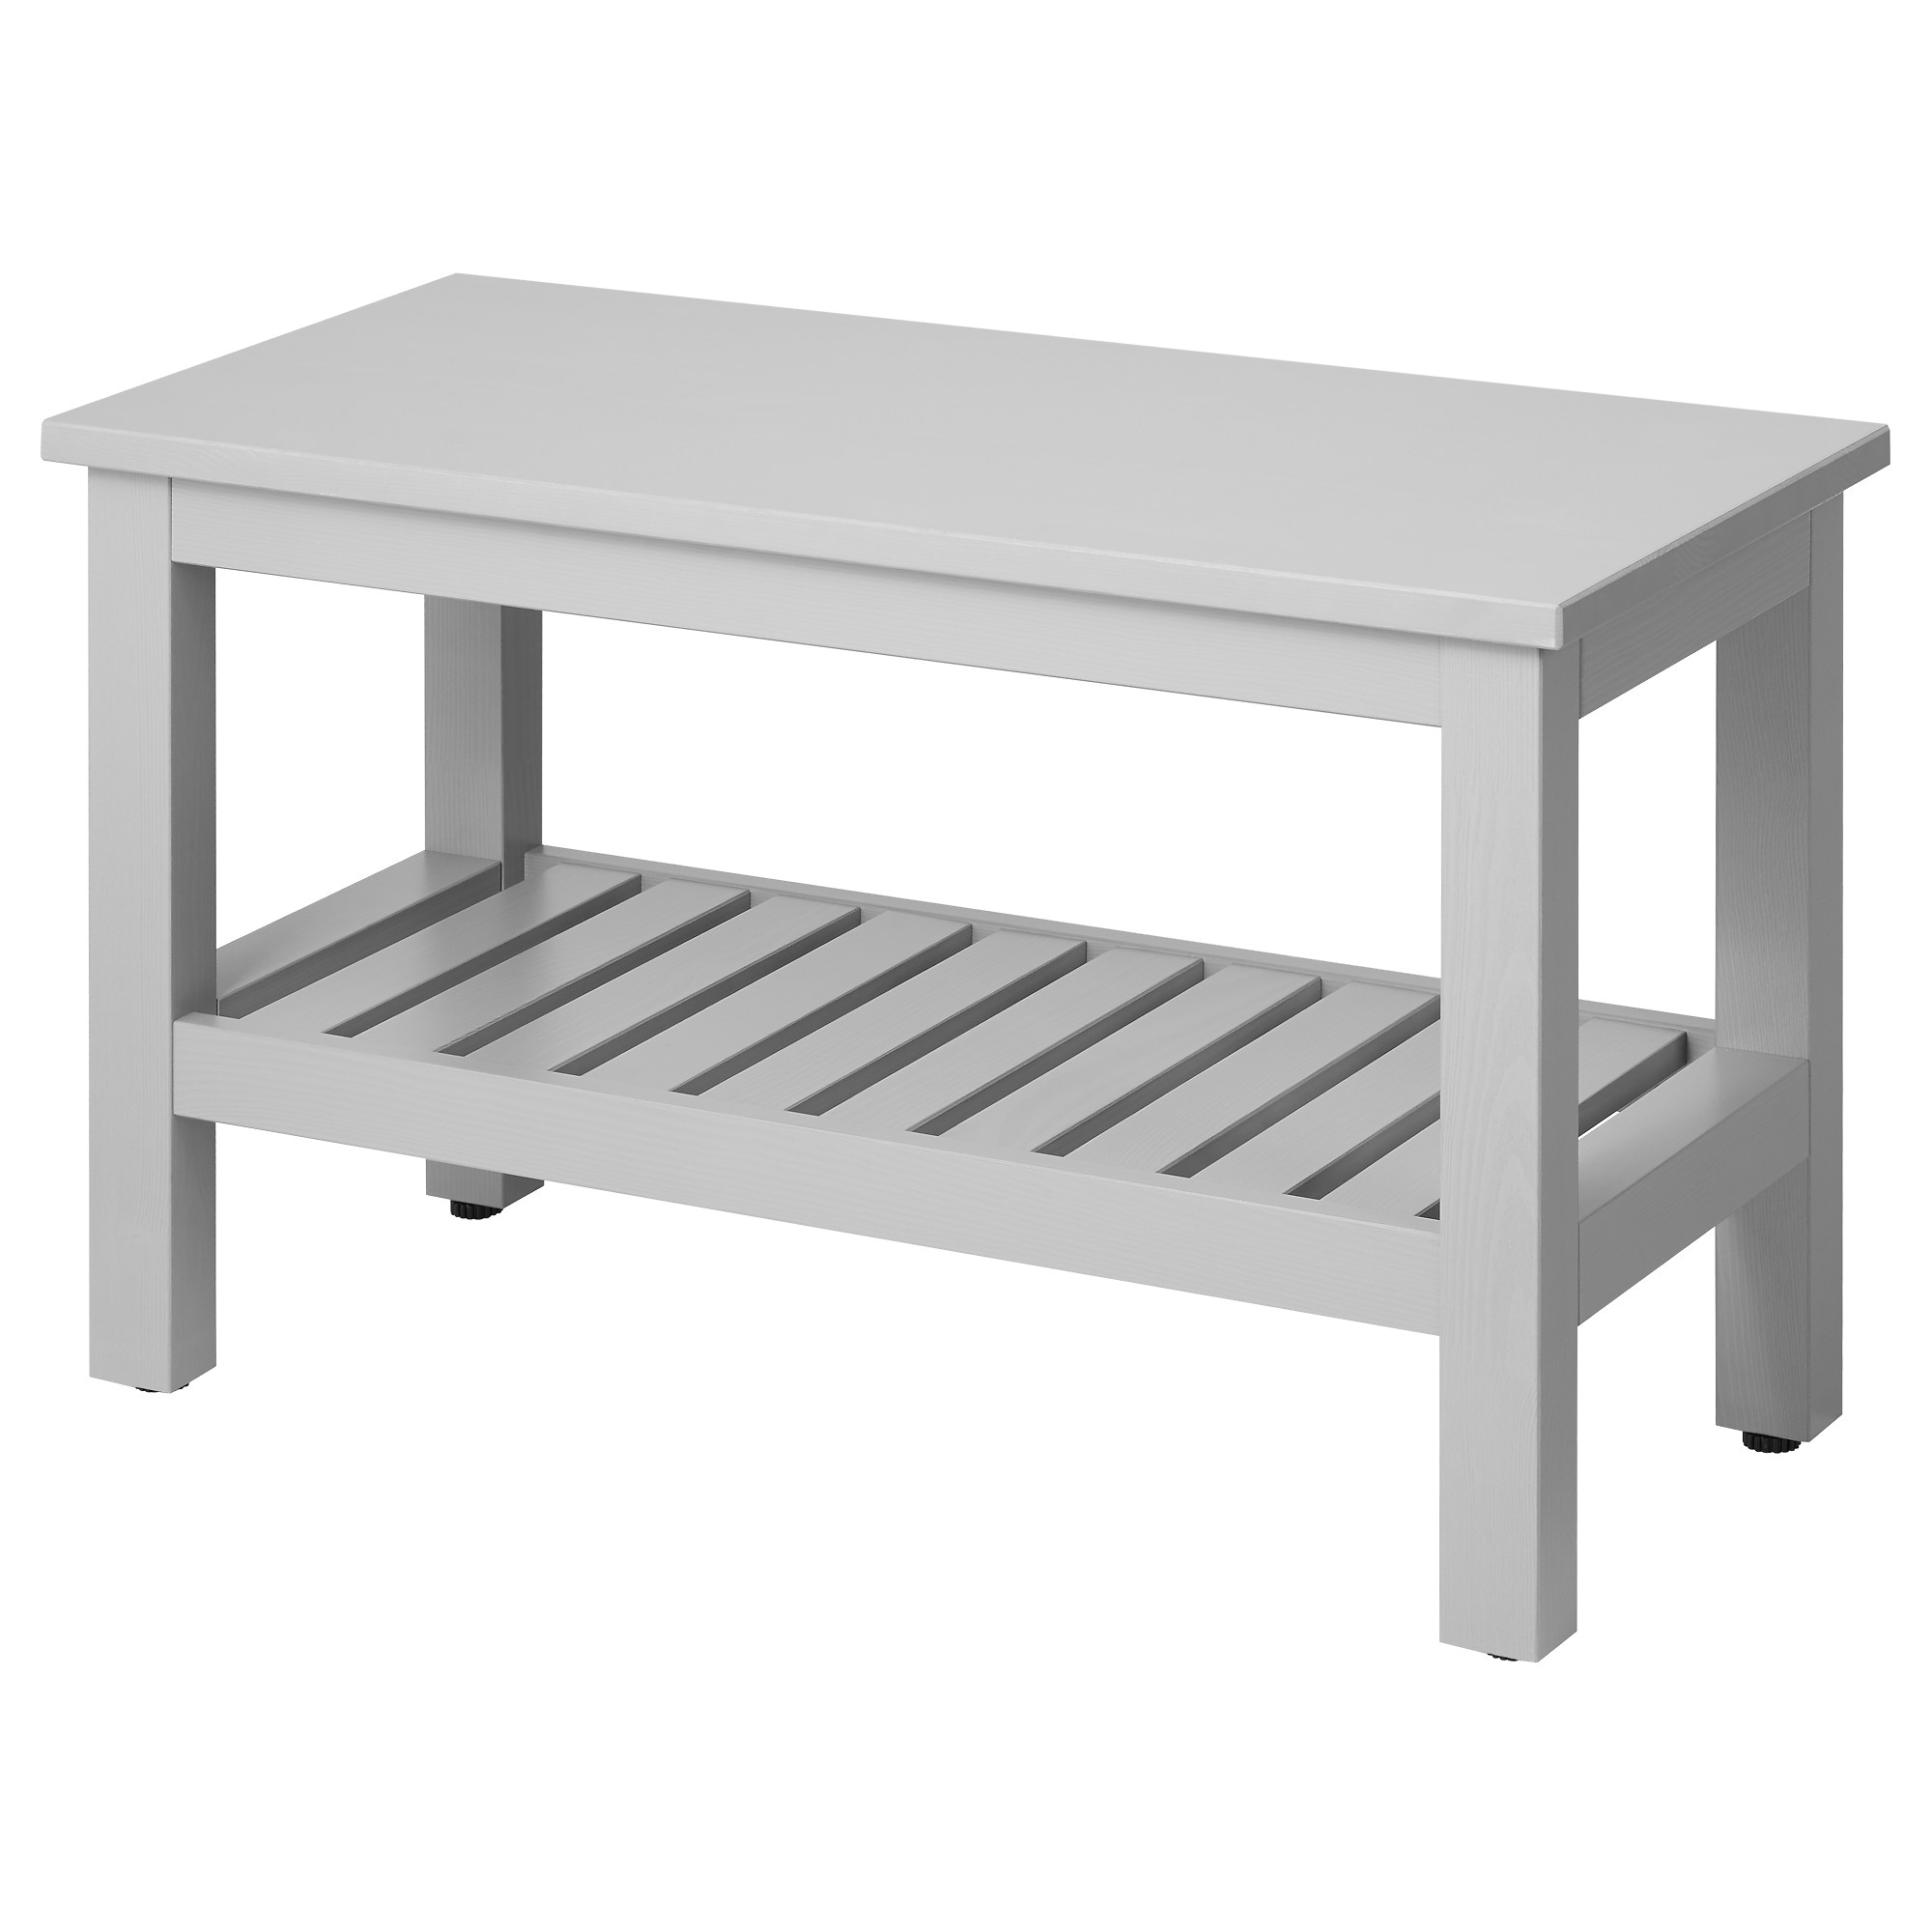 HEMNES Bench gray IKEA